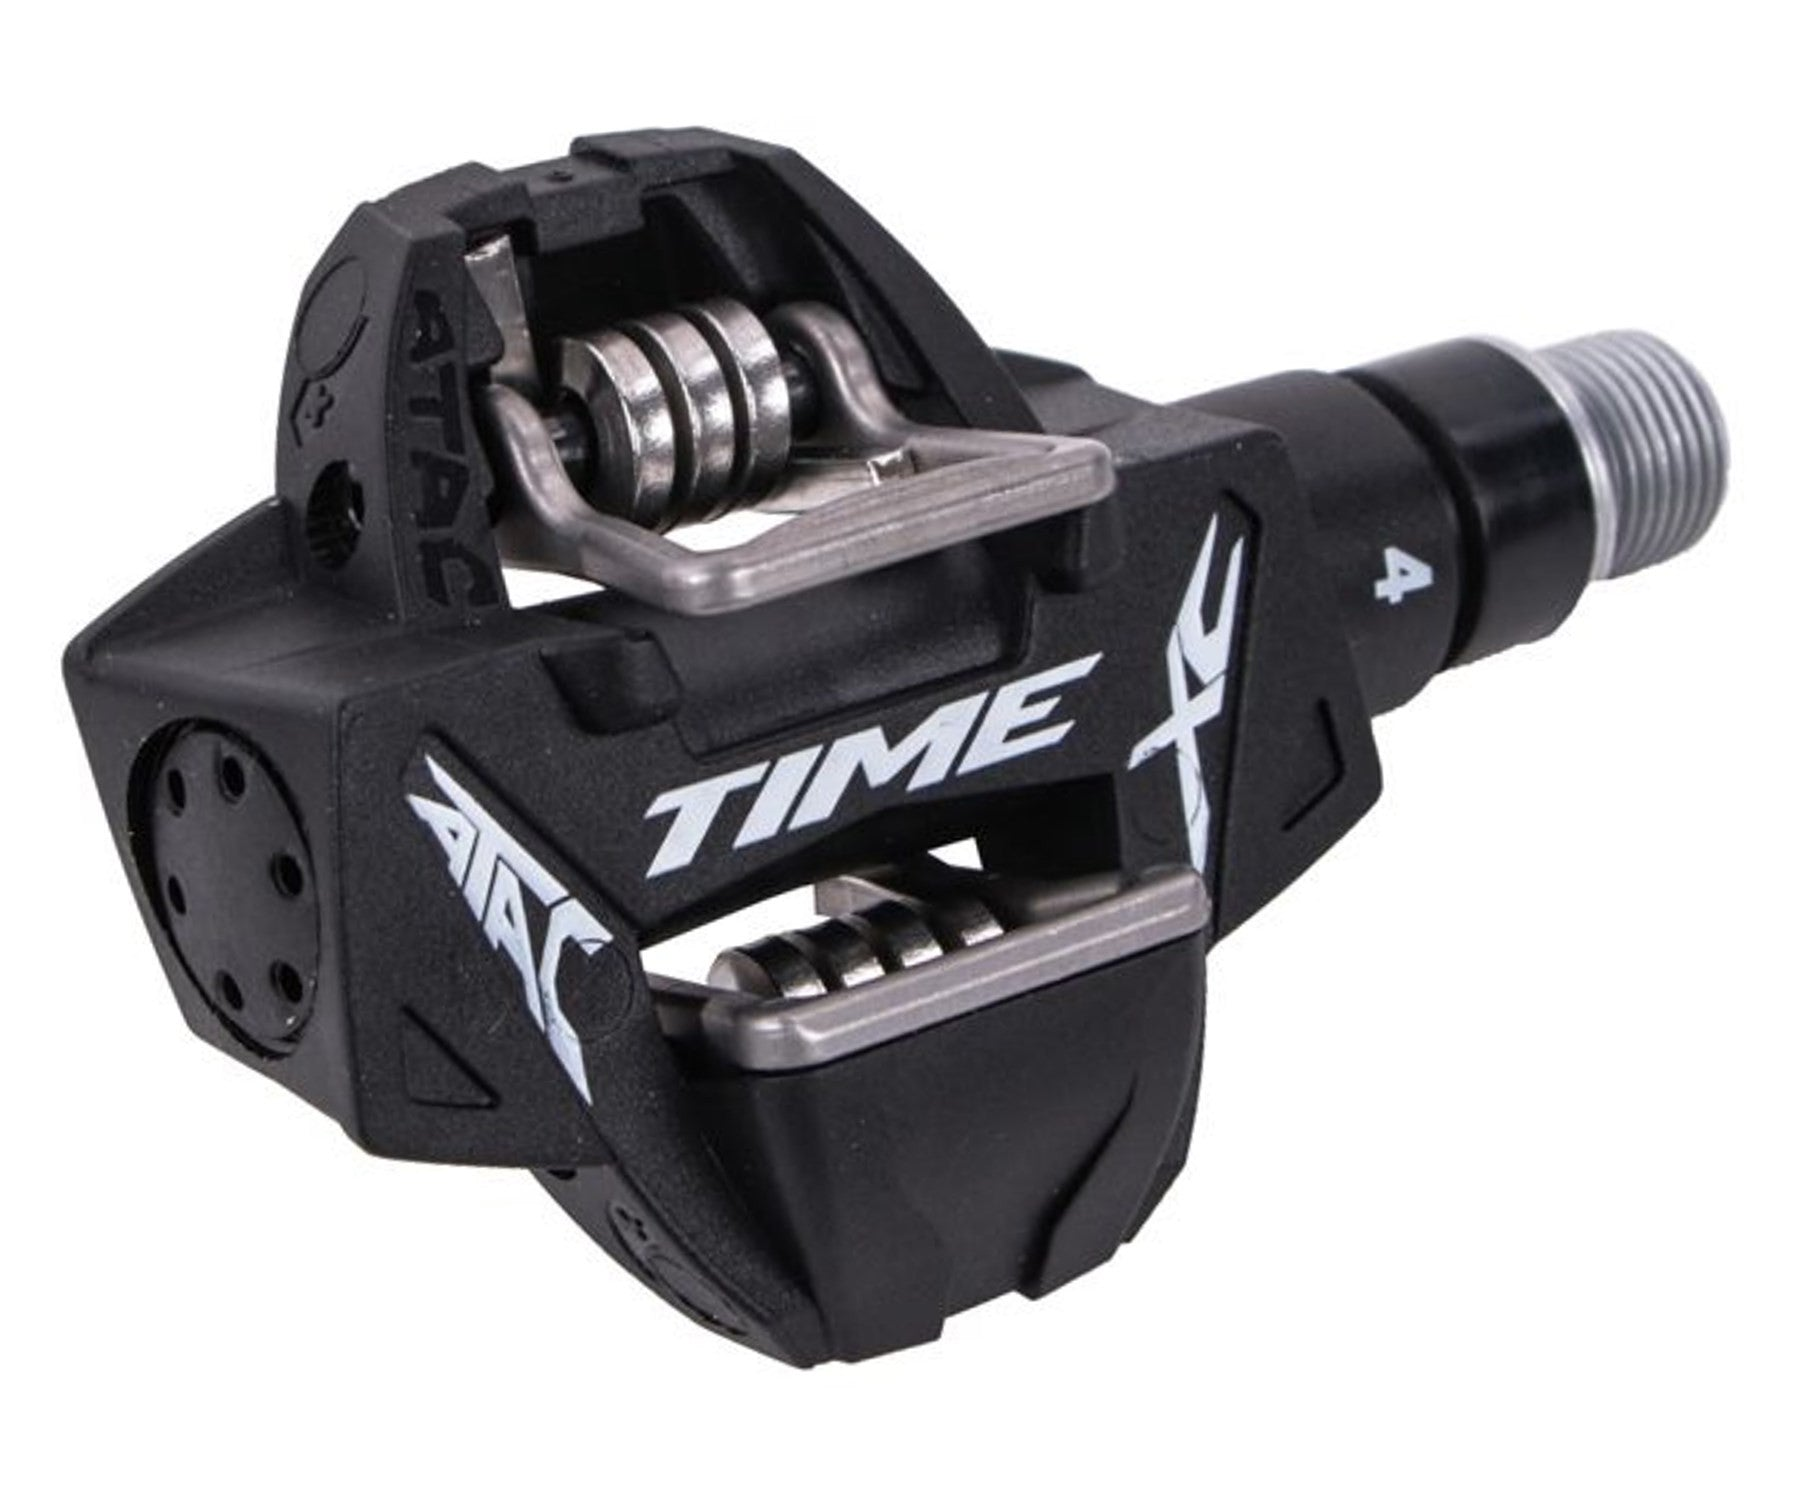 Time ATAC XC 4 pedals - Retrogression